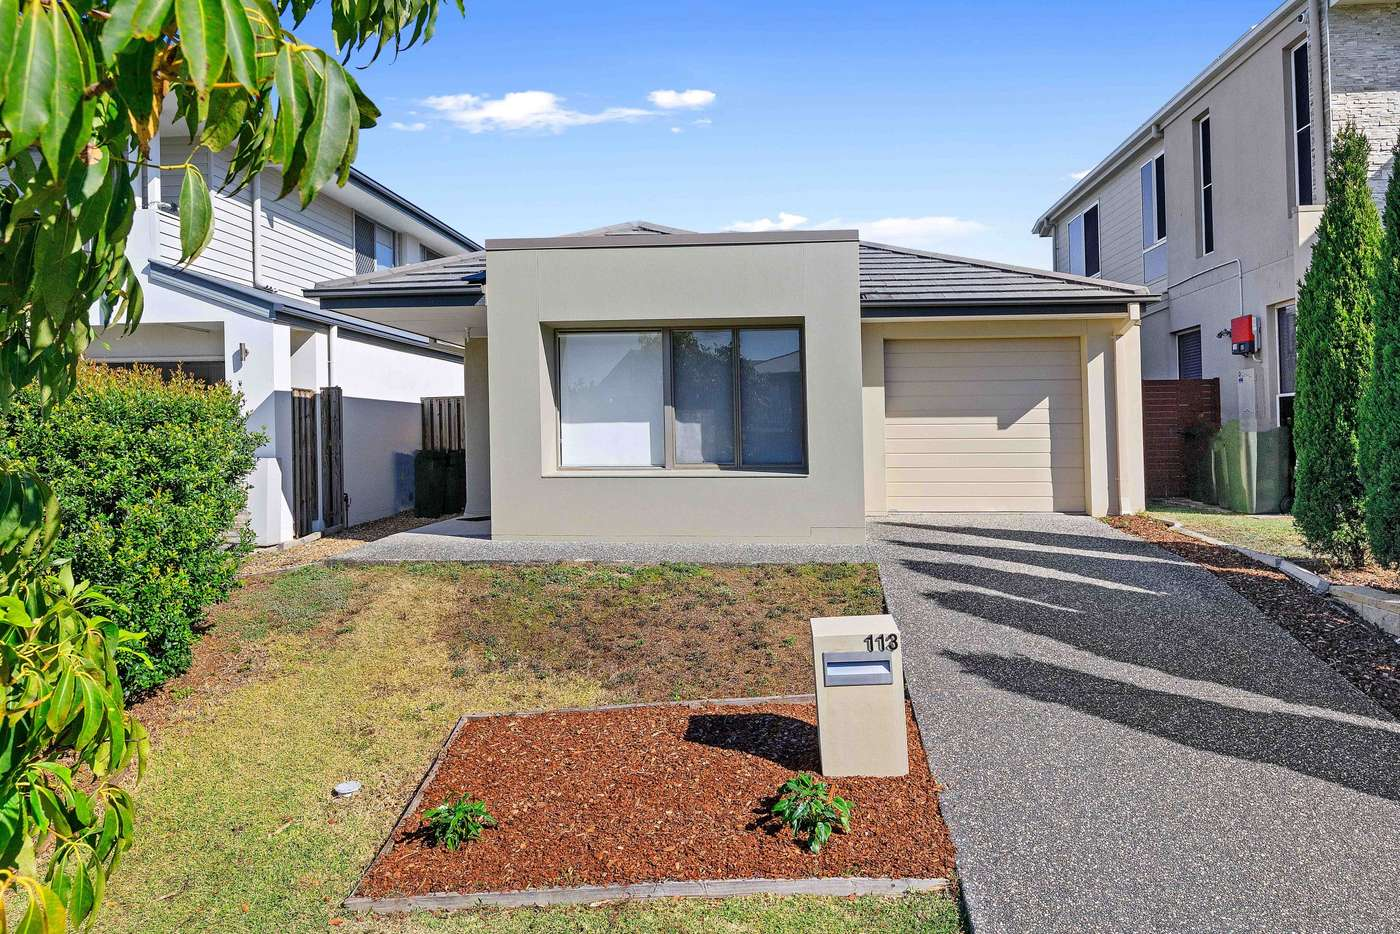 Main view of Homely house listing, 113 Cooper Crescent, Rochedale QLD 4123